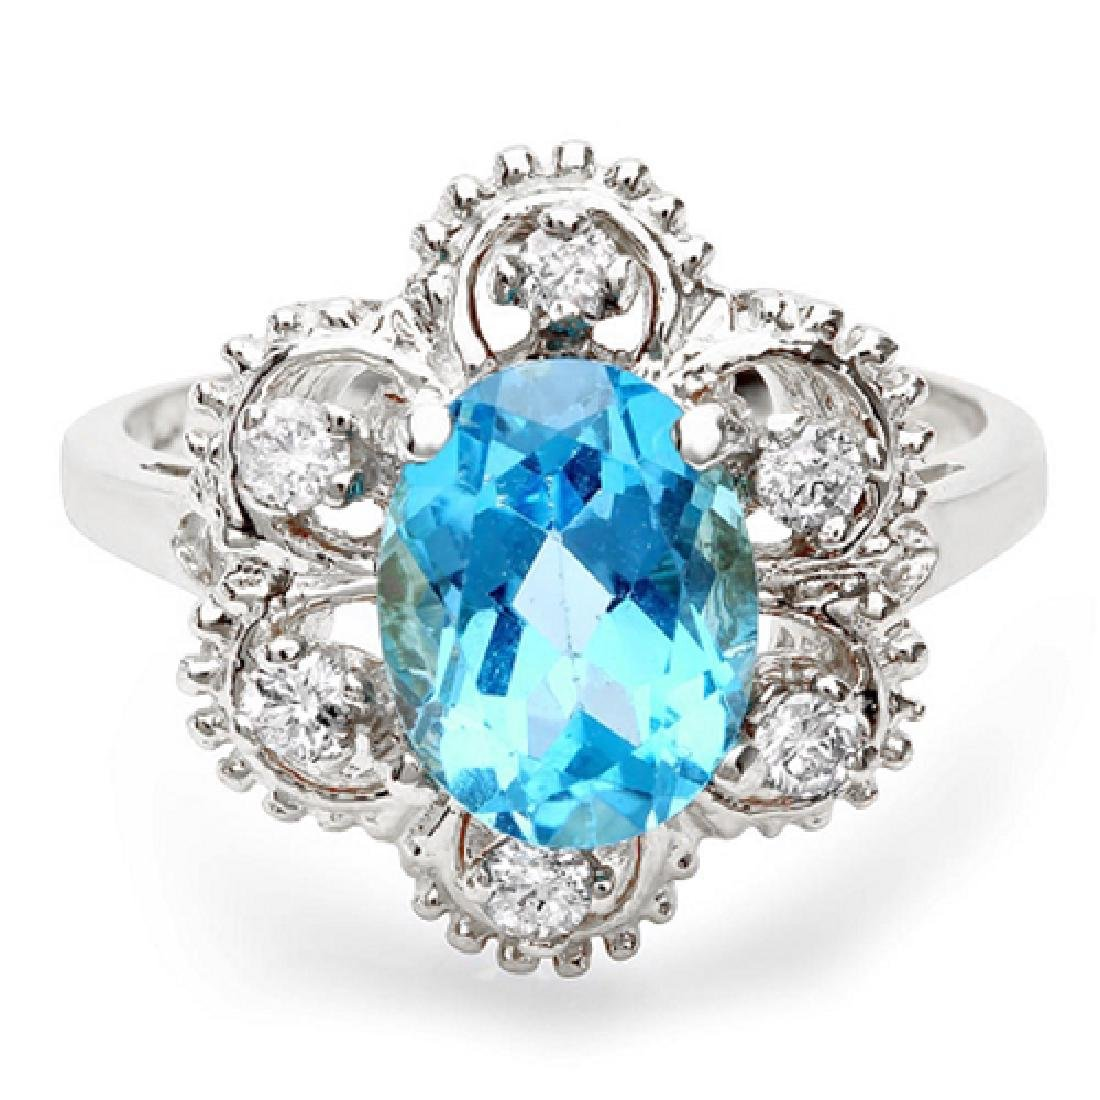 2.45 Carat Natural Topaz 18K Solid White Gold Diamond